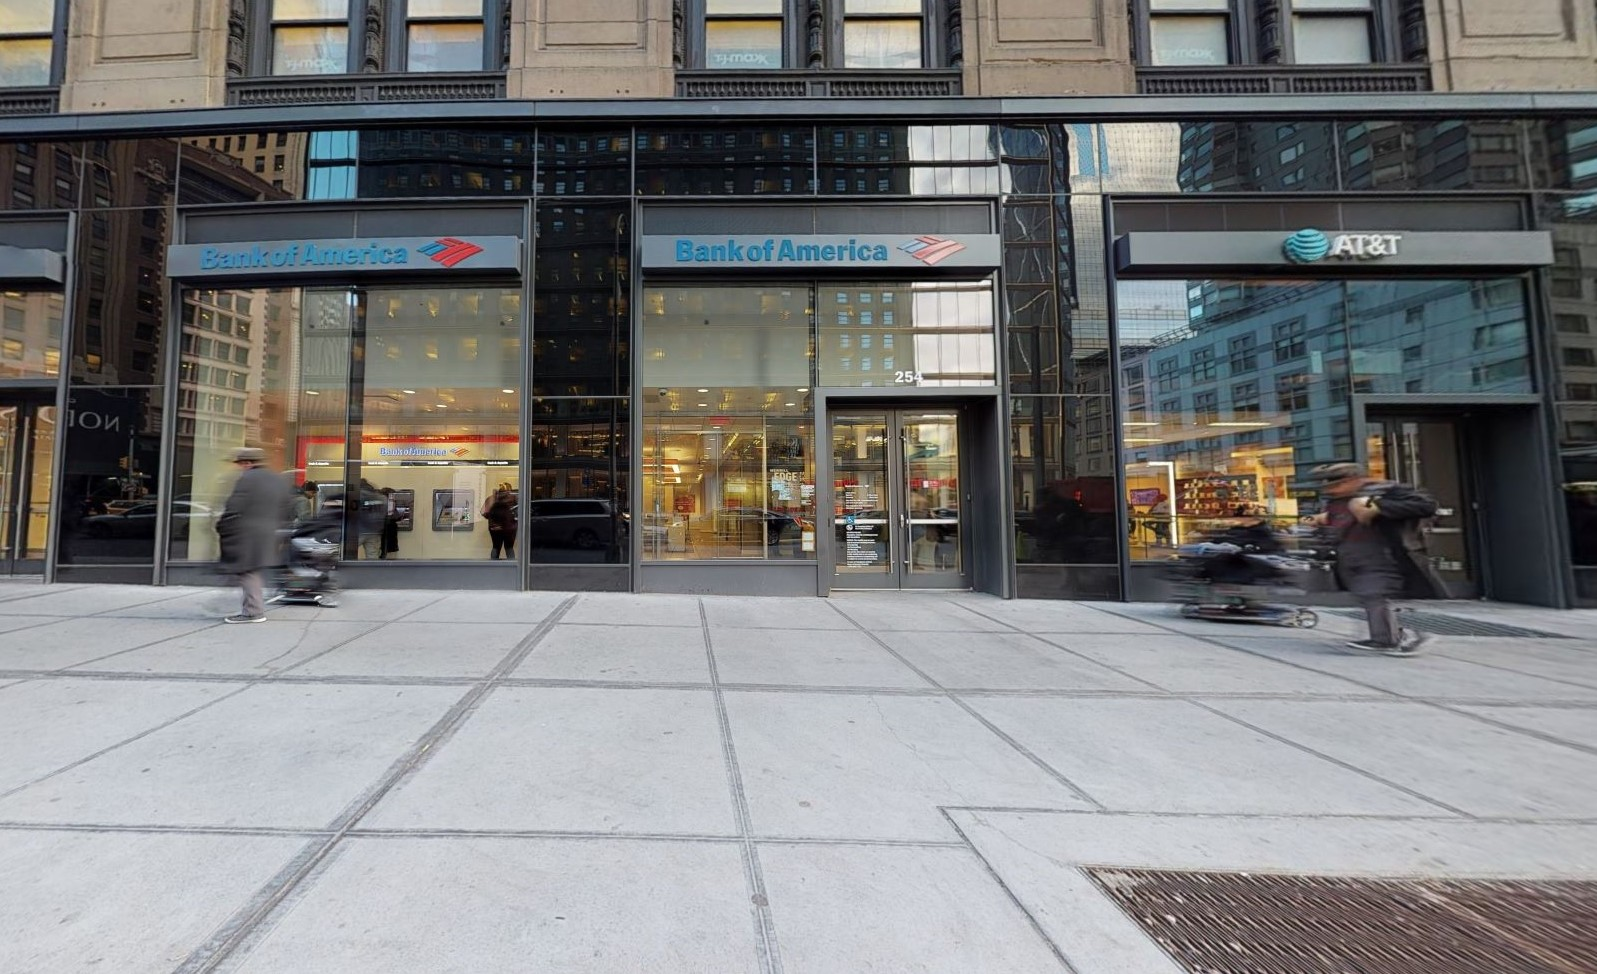 Bank of America financial center with walk-up ATM   254 W 57th St, New York, NY 10107